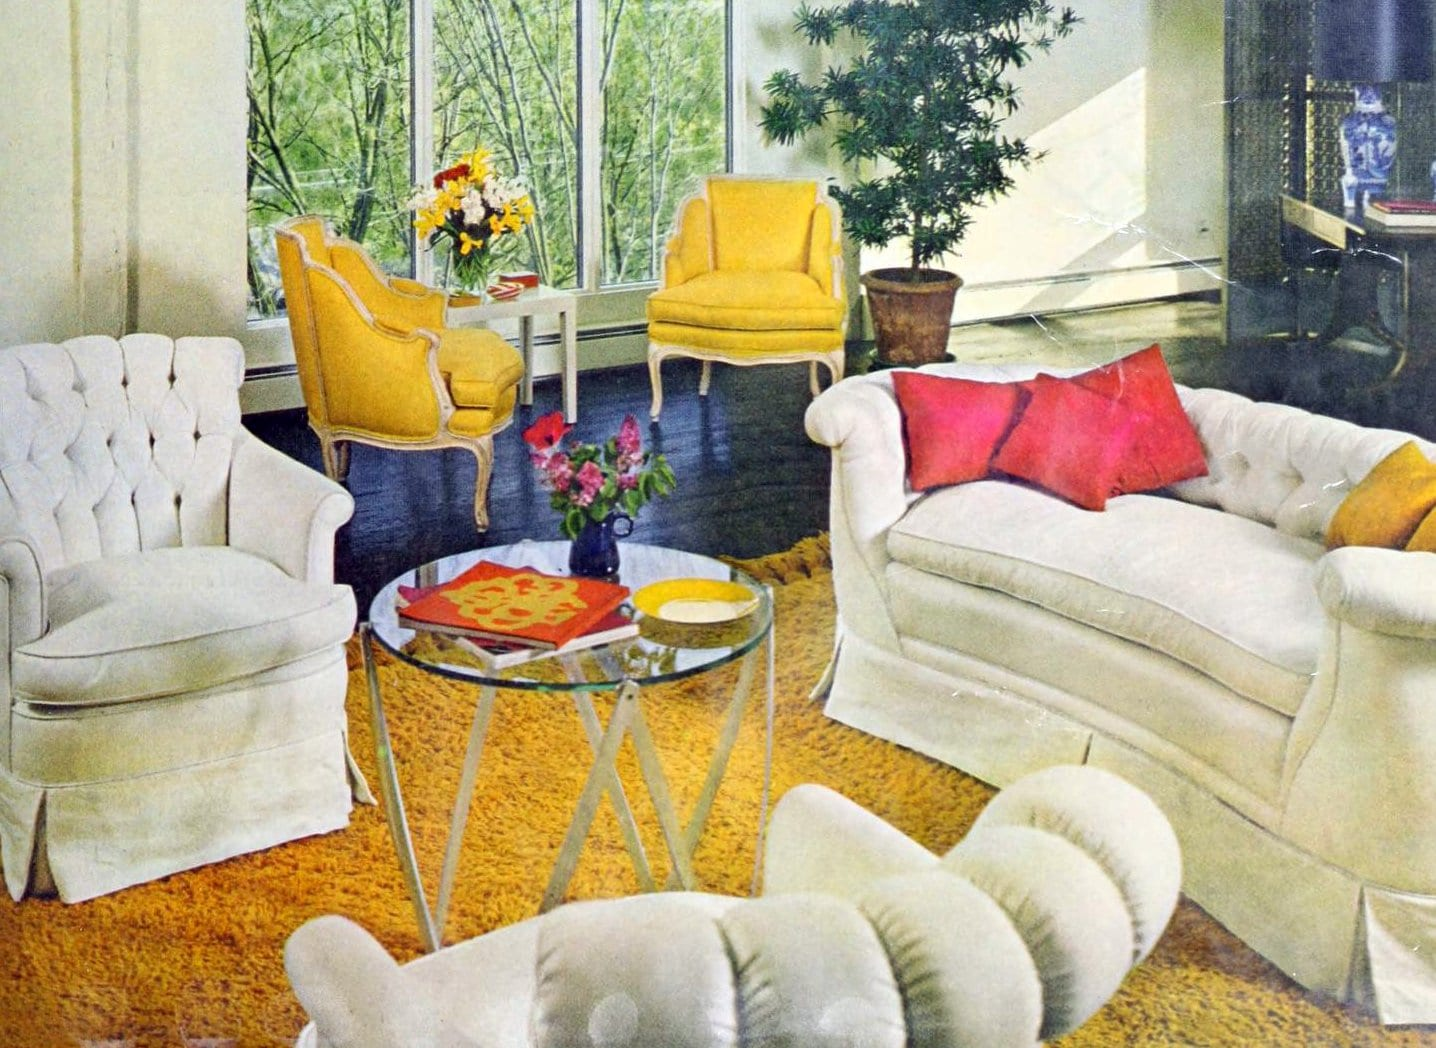 Bright and cheerful vintage 1960s living room decor